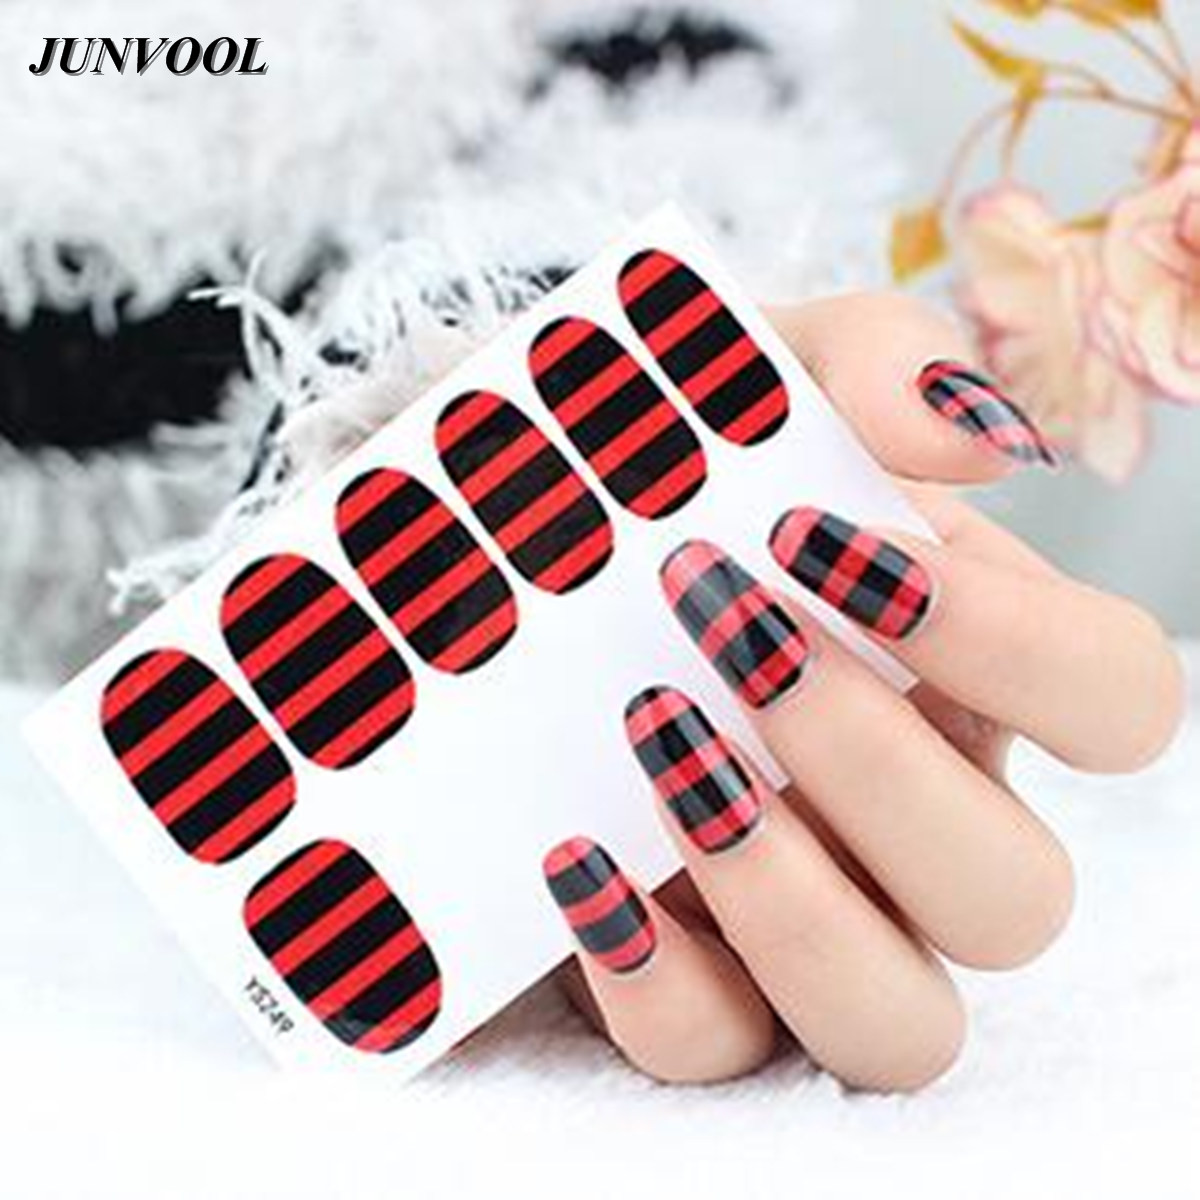 Adhesive Nail Art Decoration Stickers 5pcs French Full Nail Foil ...